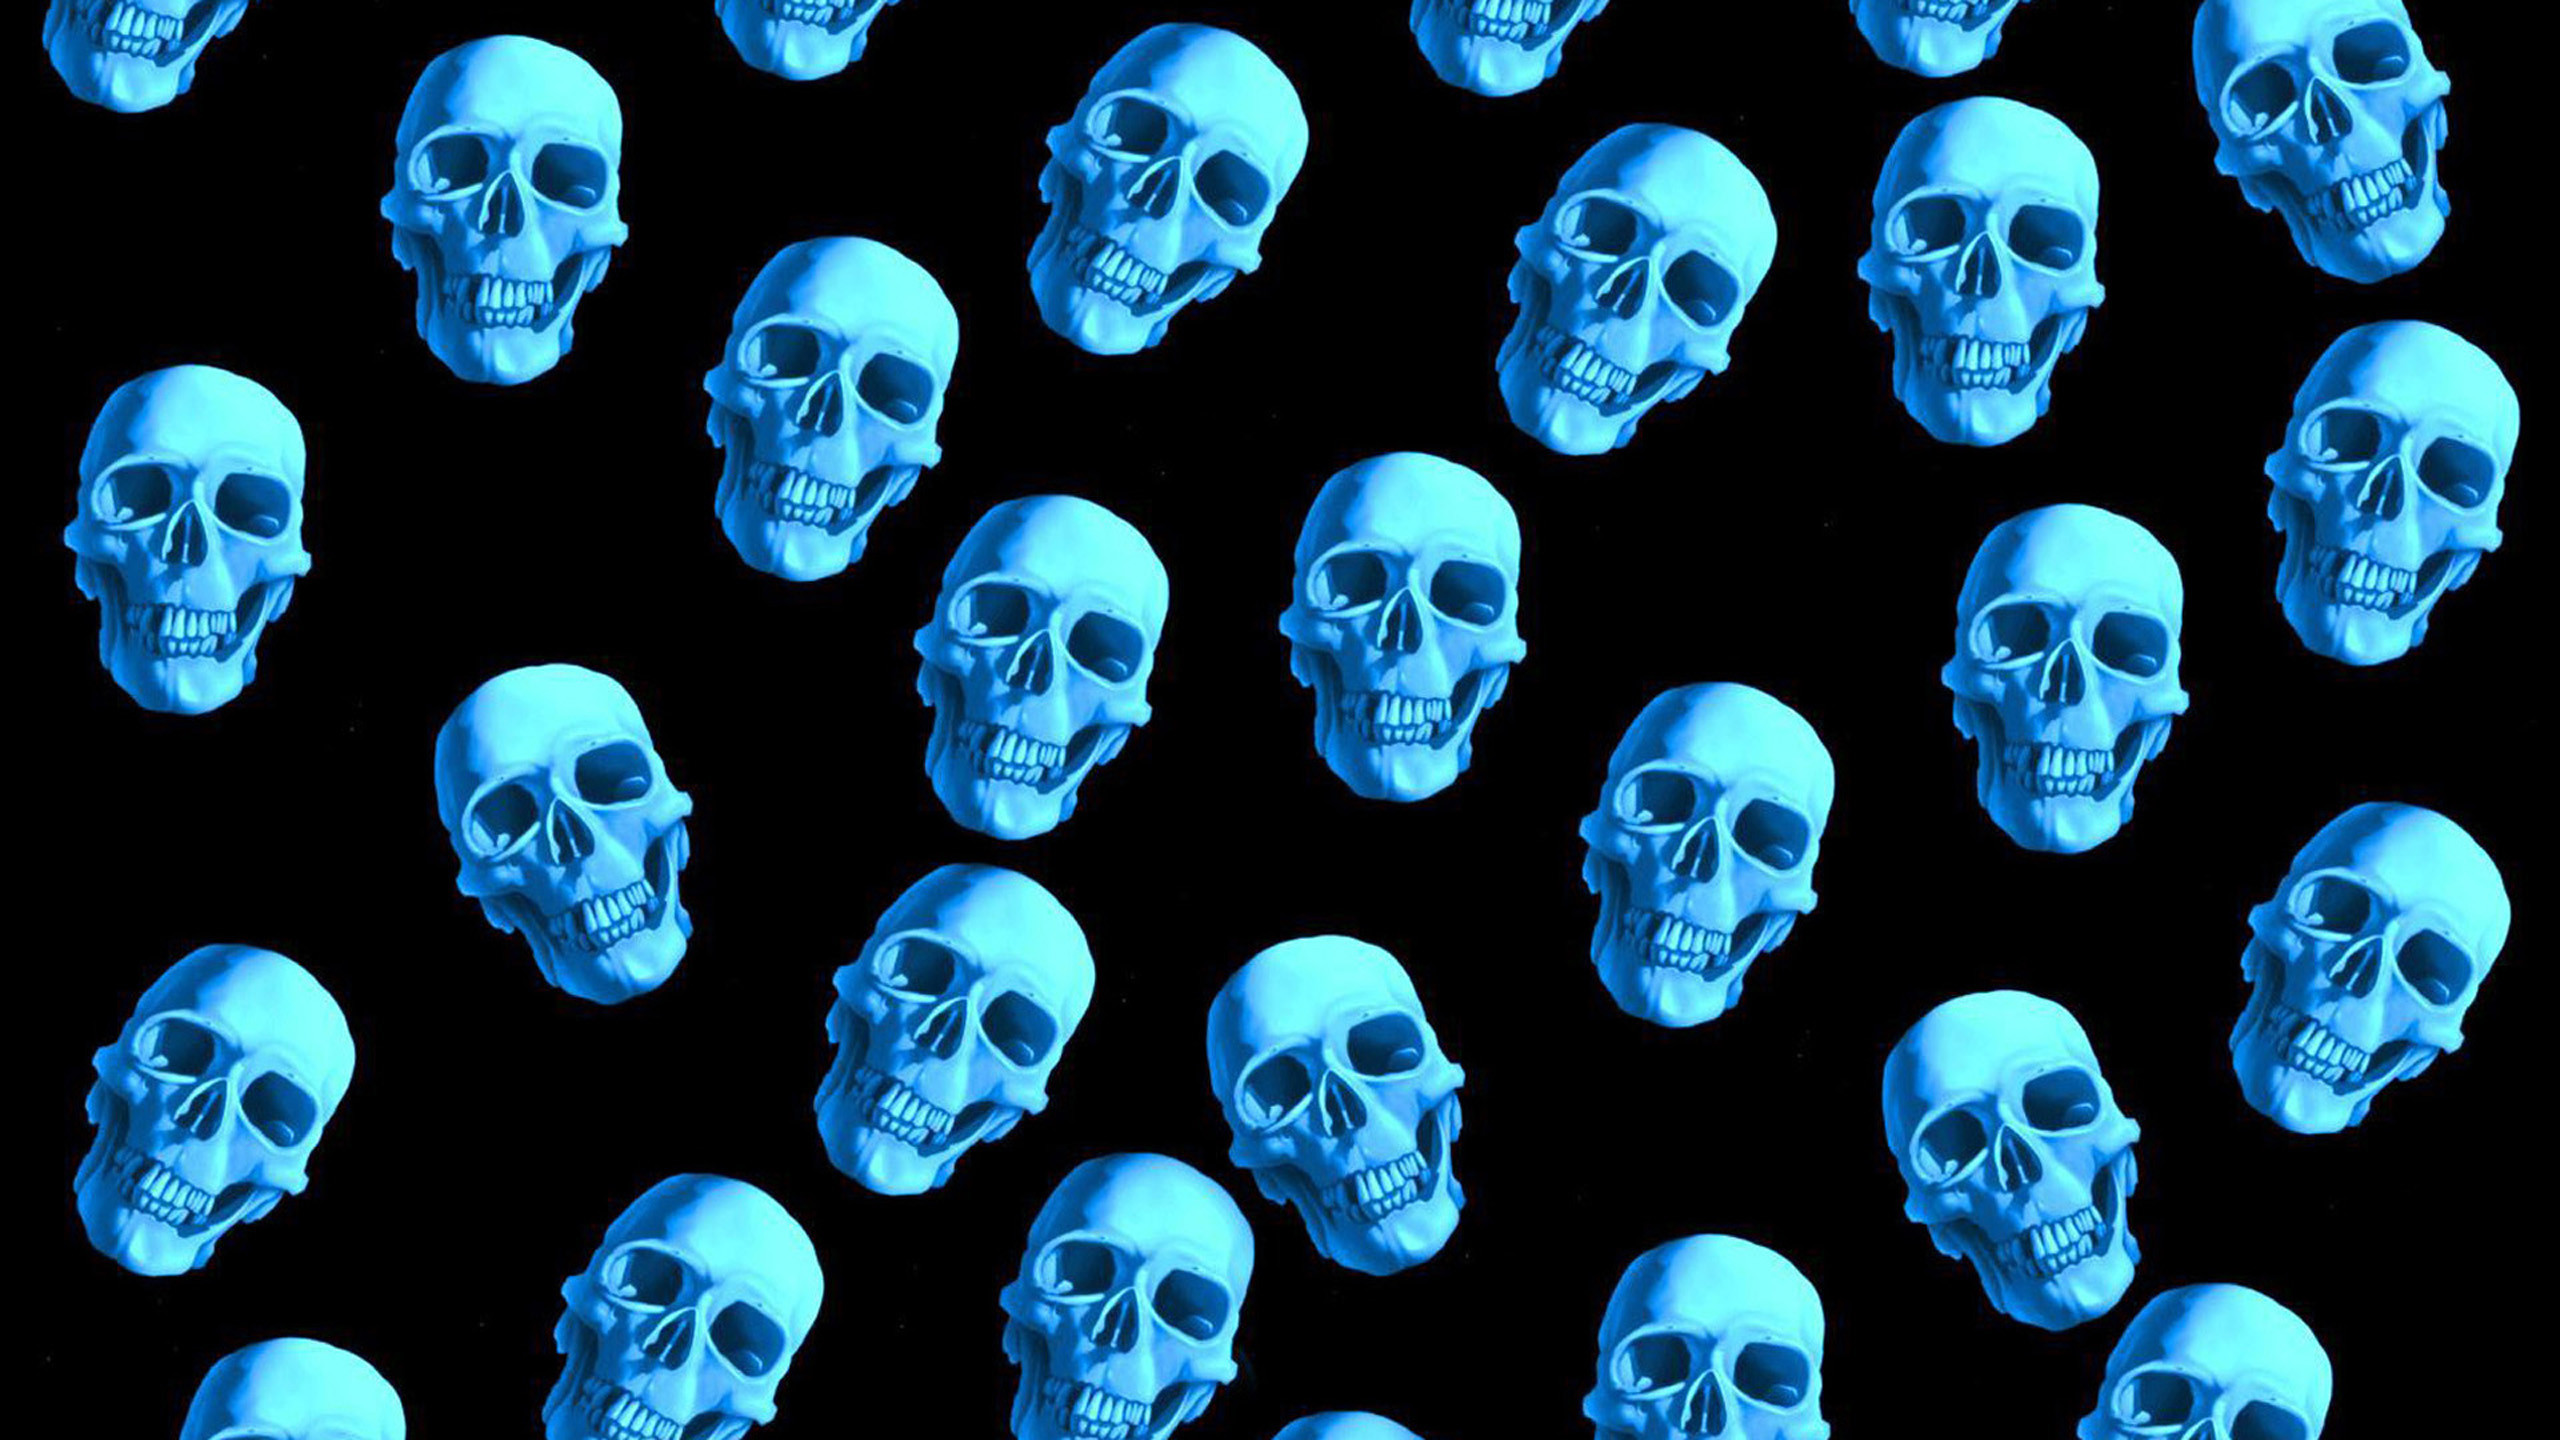 2560x1440 Blue Skull Backgrounds 38 Wallpapers